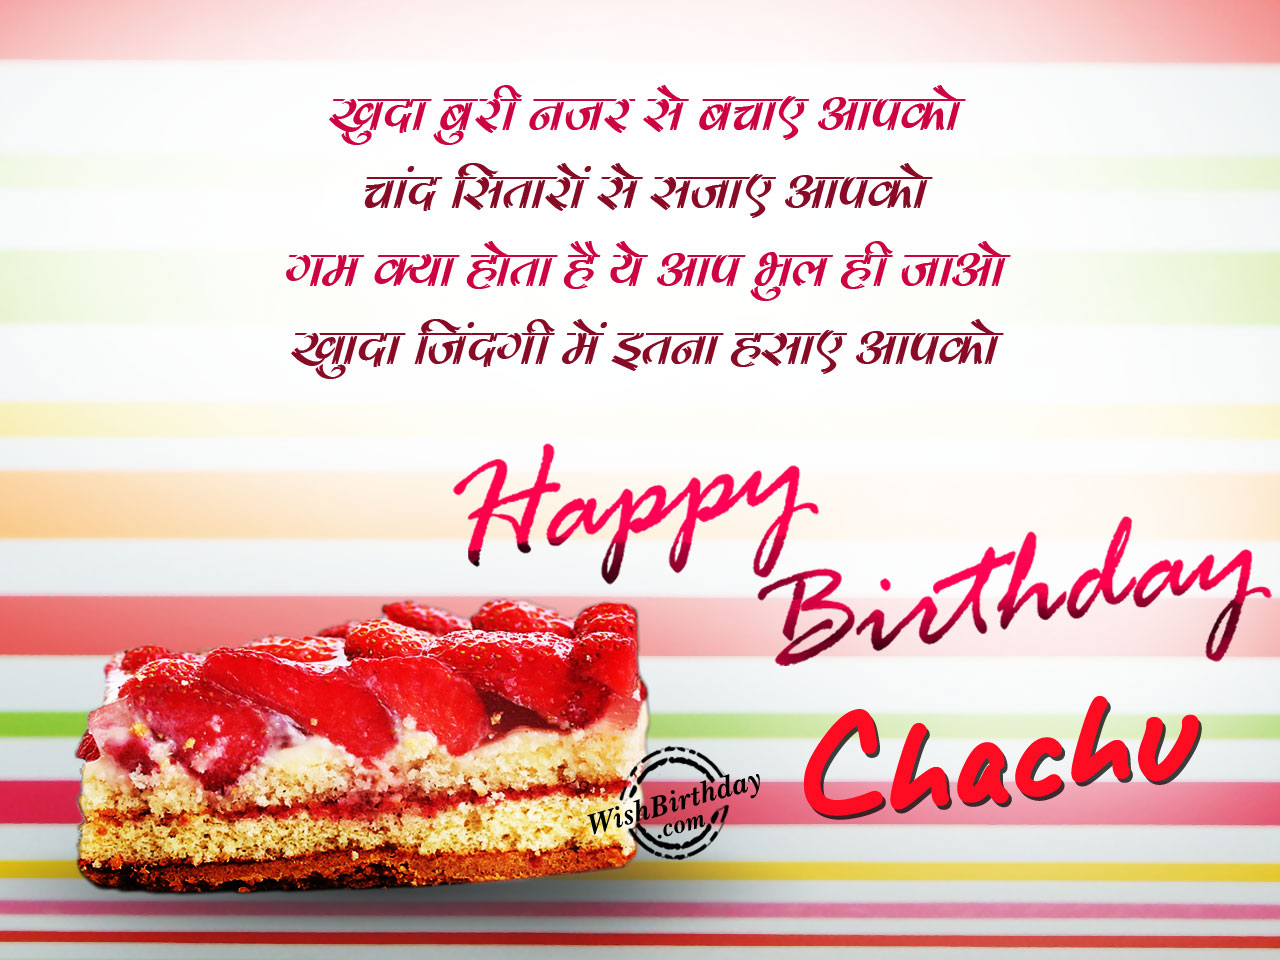 happy birthday chachu wallpaper ; Suraj-roshni-lekar-aaya-1